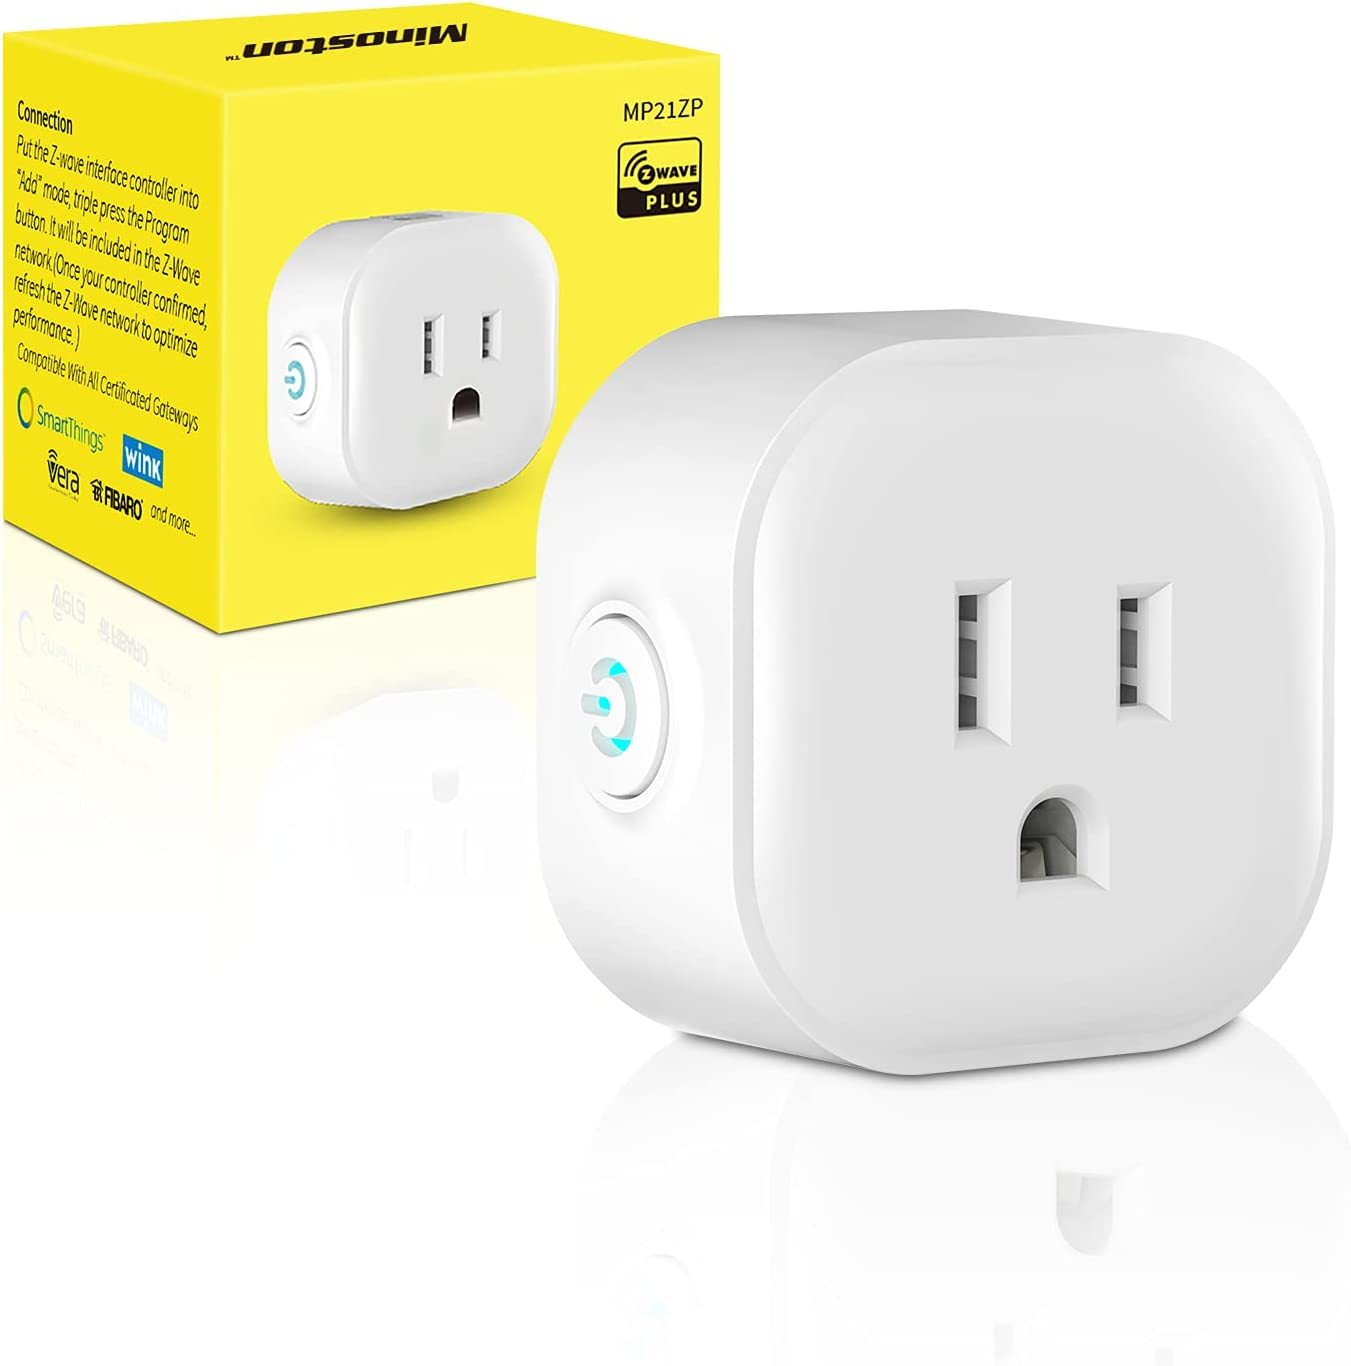 Z-Wave Plug with Energy Monitoring, Z-Wave Plus Mini Outlet Built-in Repeater Range Extender, Z-Wave Hub Required, Alexa and Google Assistant Compatible(MP21ZP)